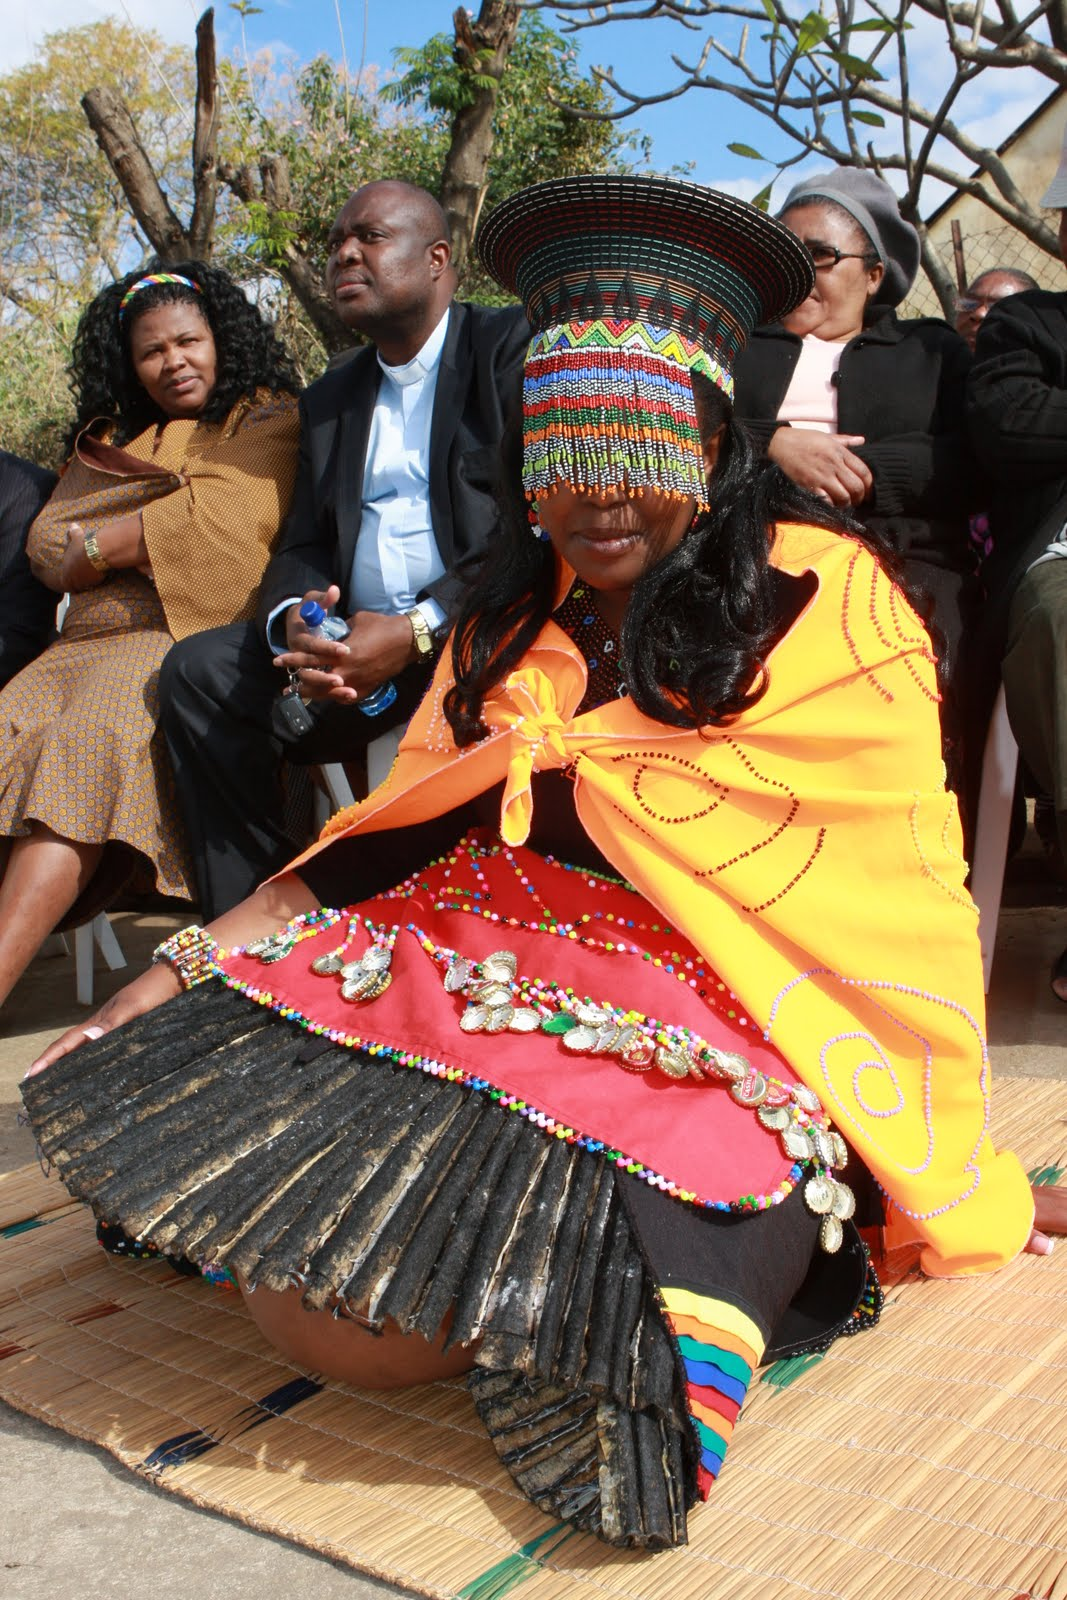 Introduction to Zulu culture